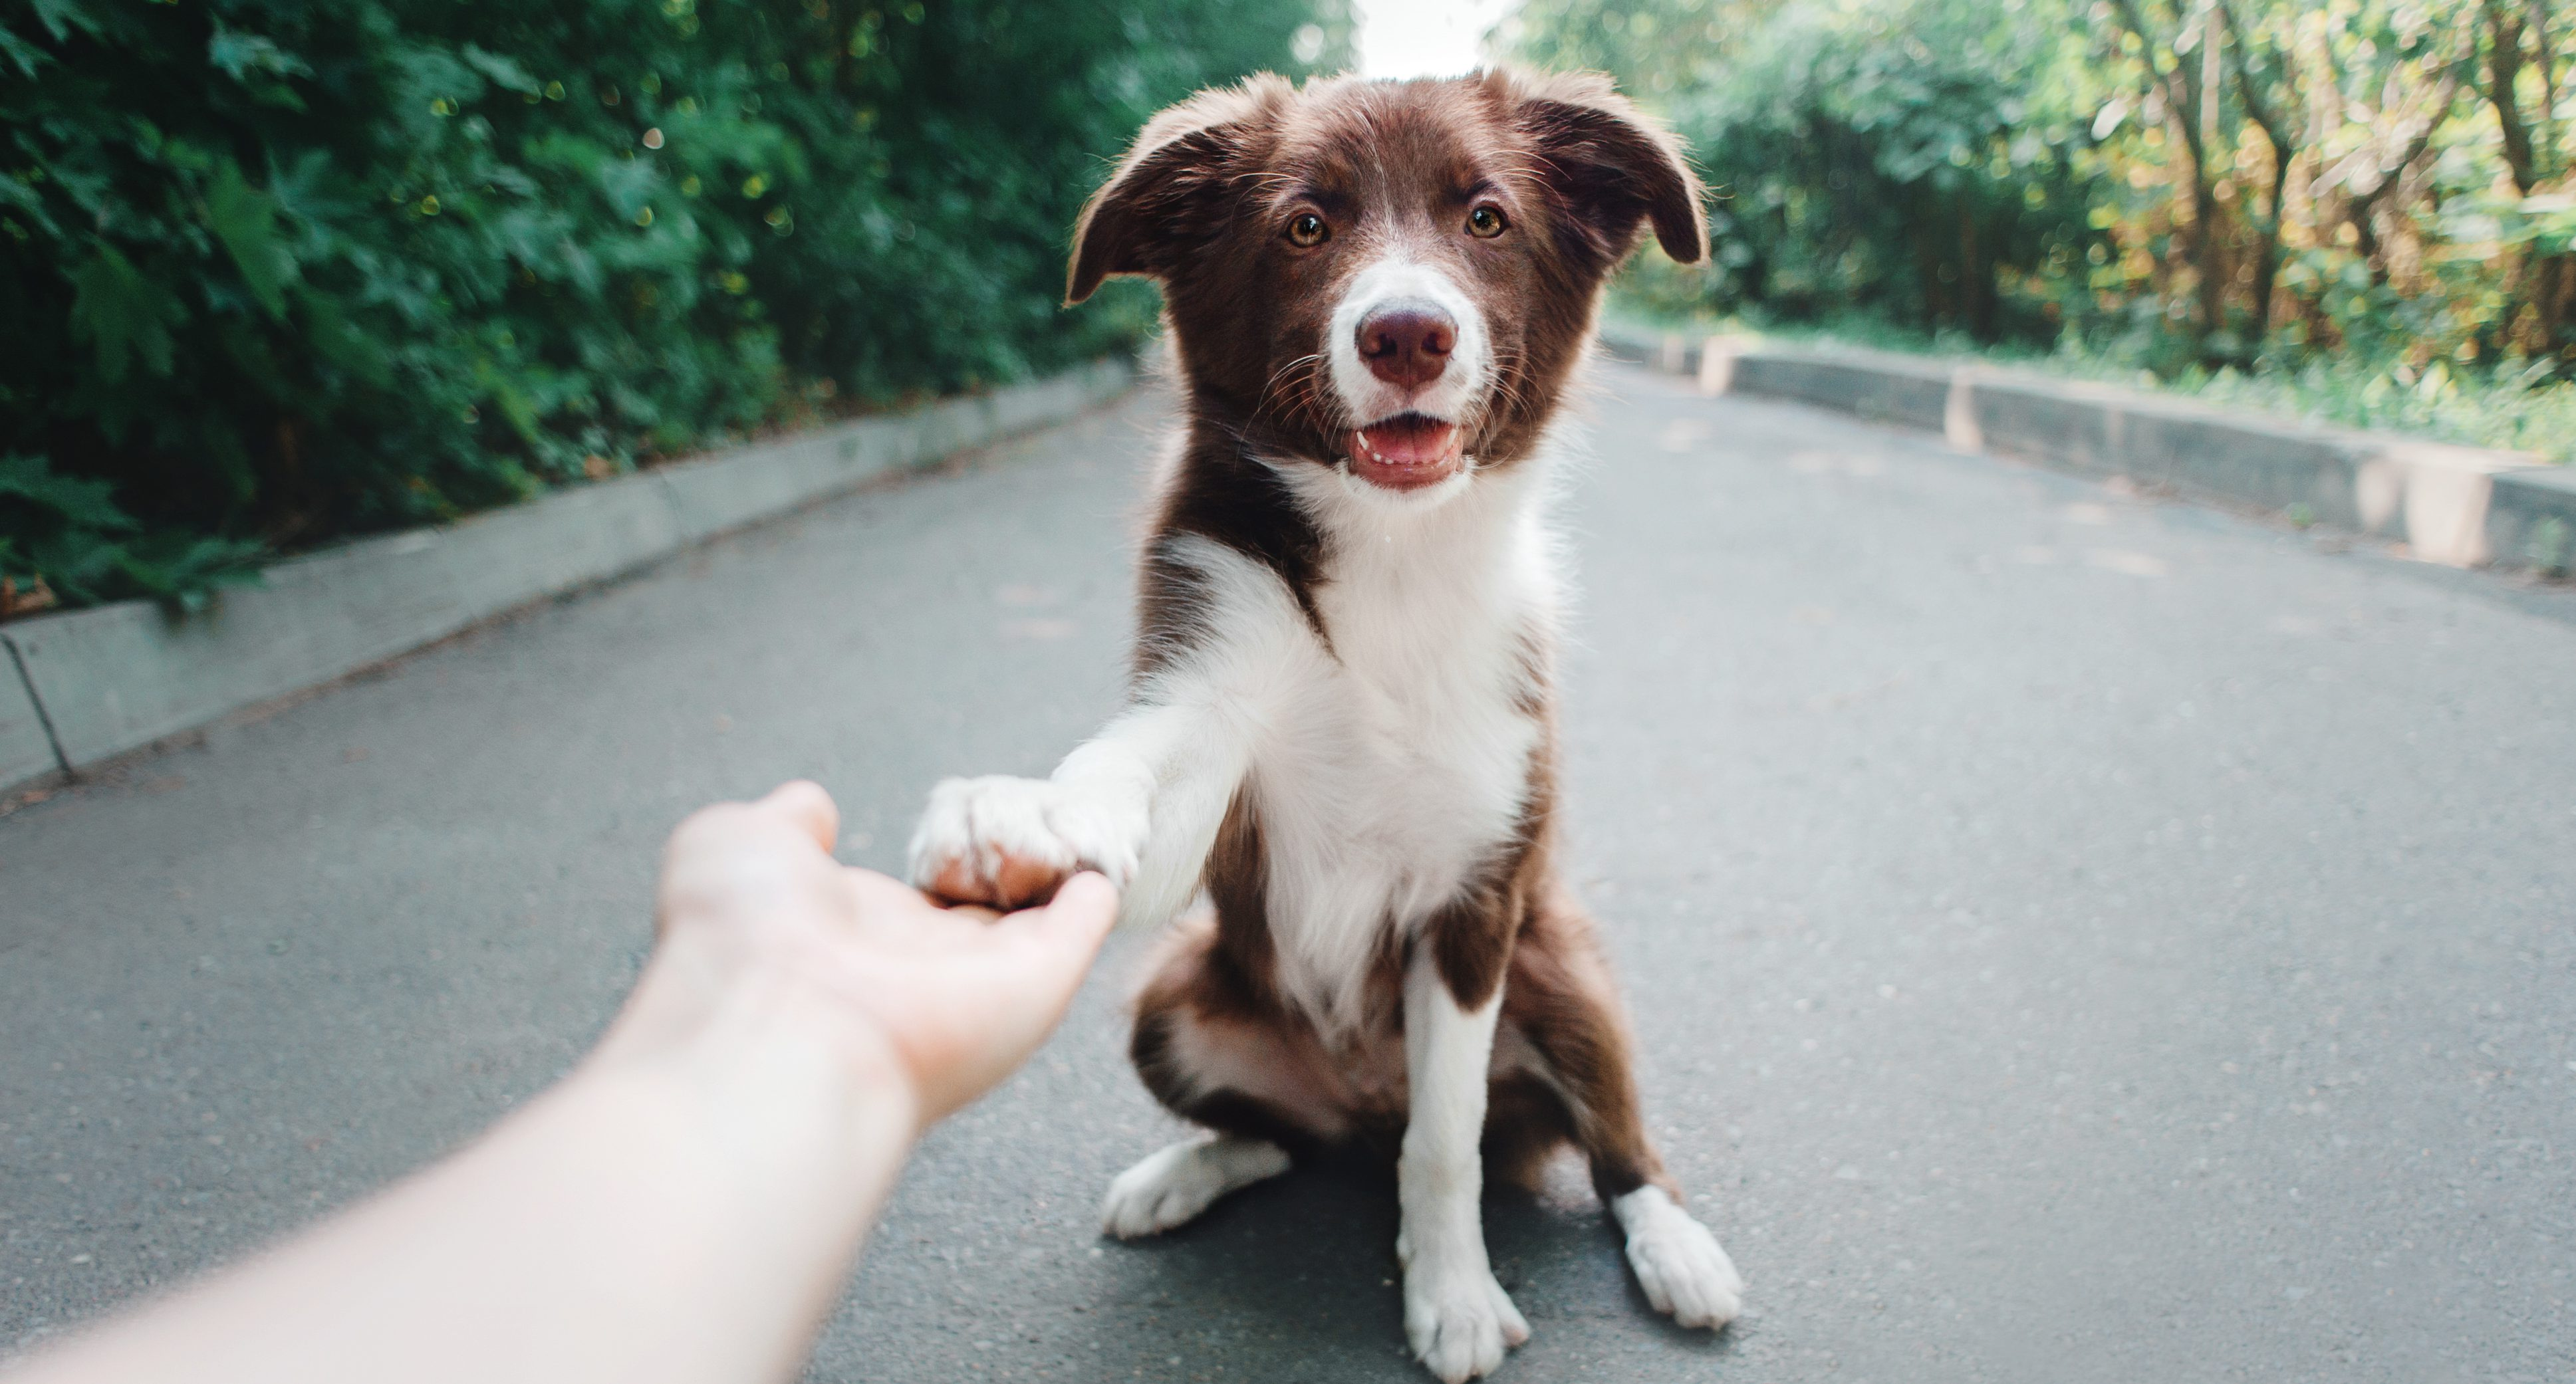 7 Easy Tricks to Teach Your Dog | Train Your Dog Month